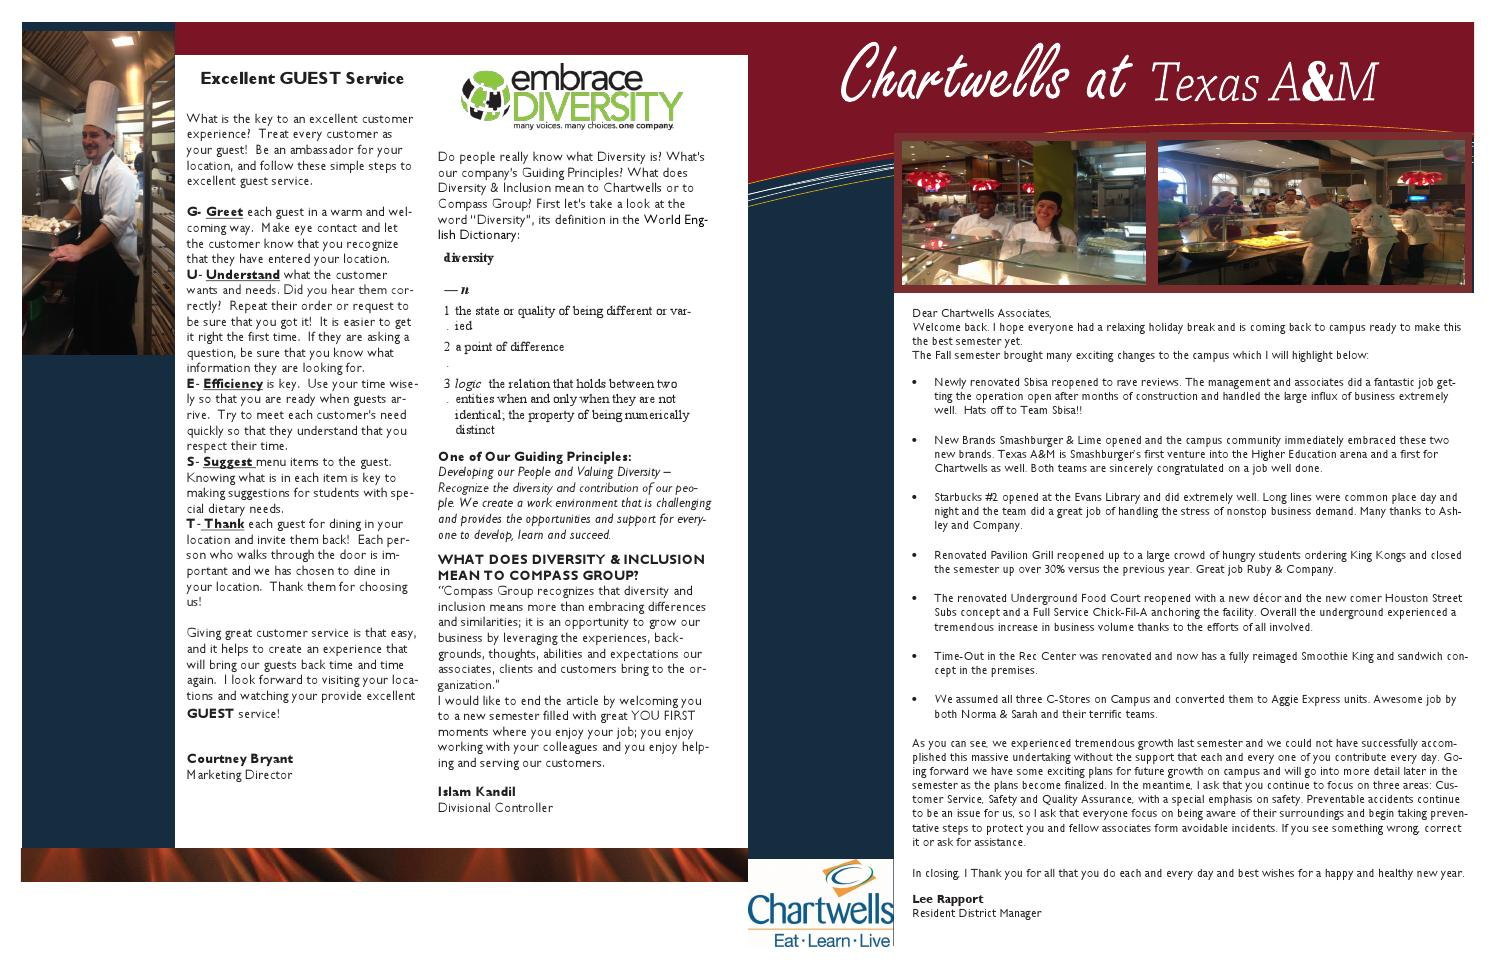 Chartwells Newsletter by Chartwells Dining - Issuu